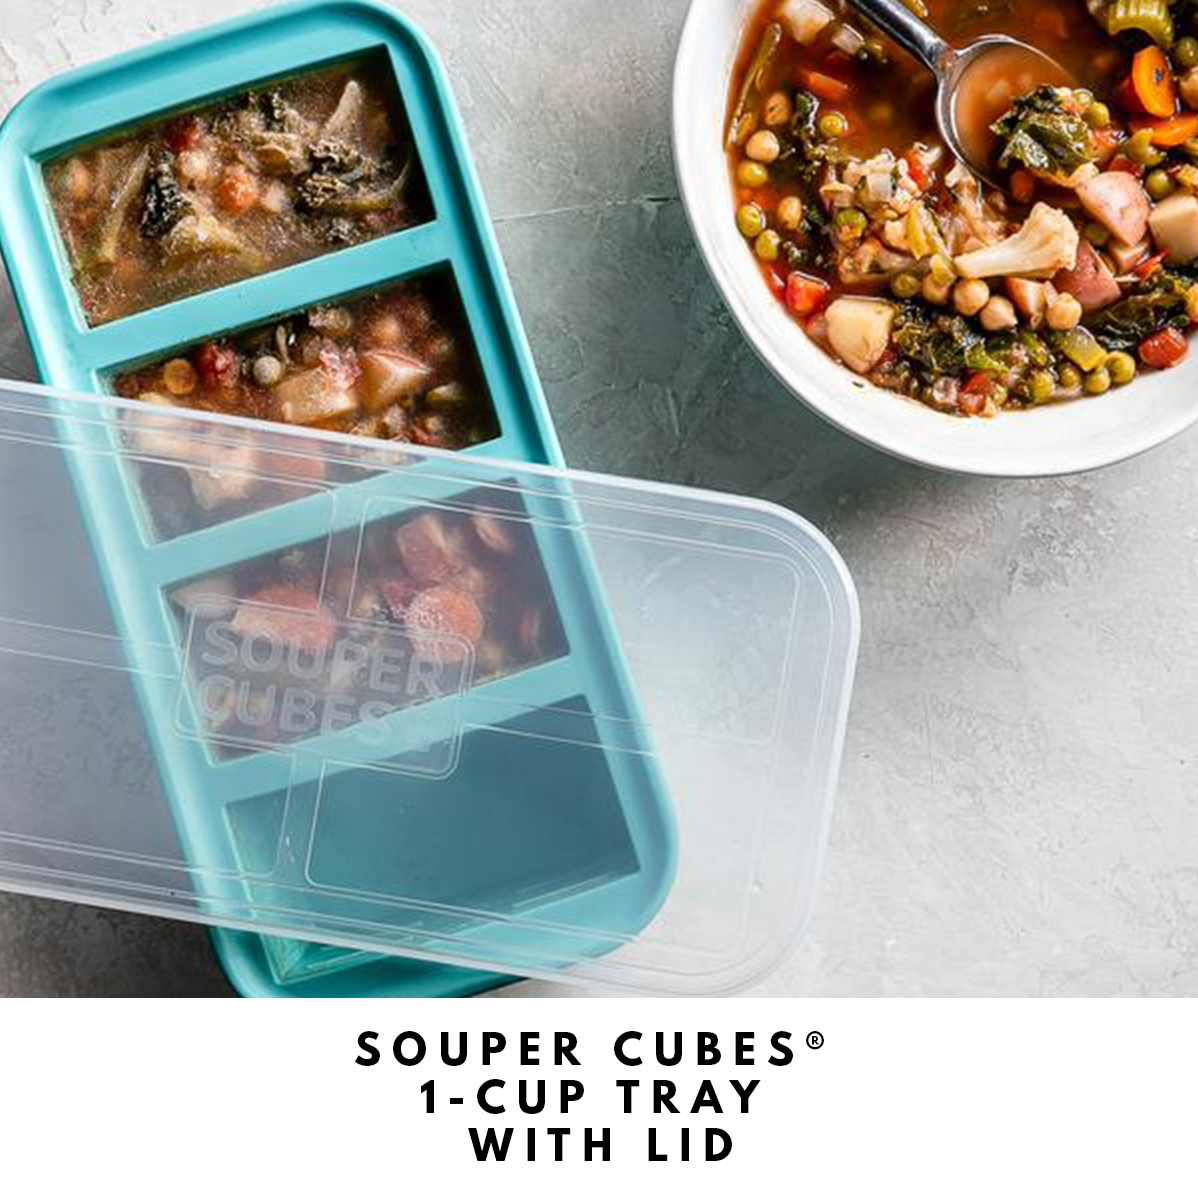 souper-cubes1-cup+tray+with+lid